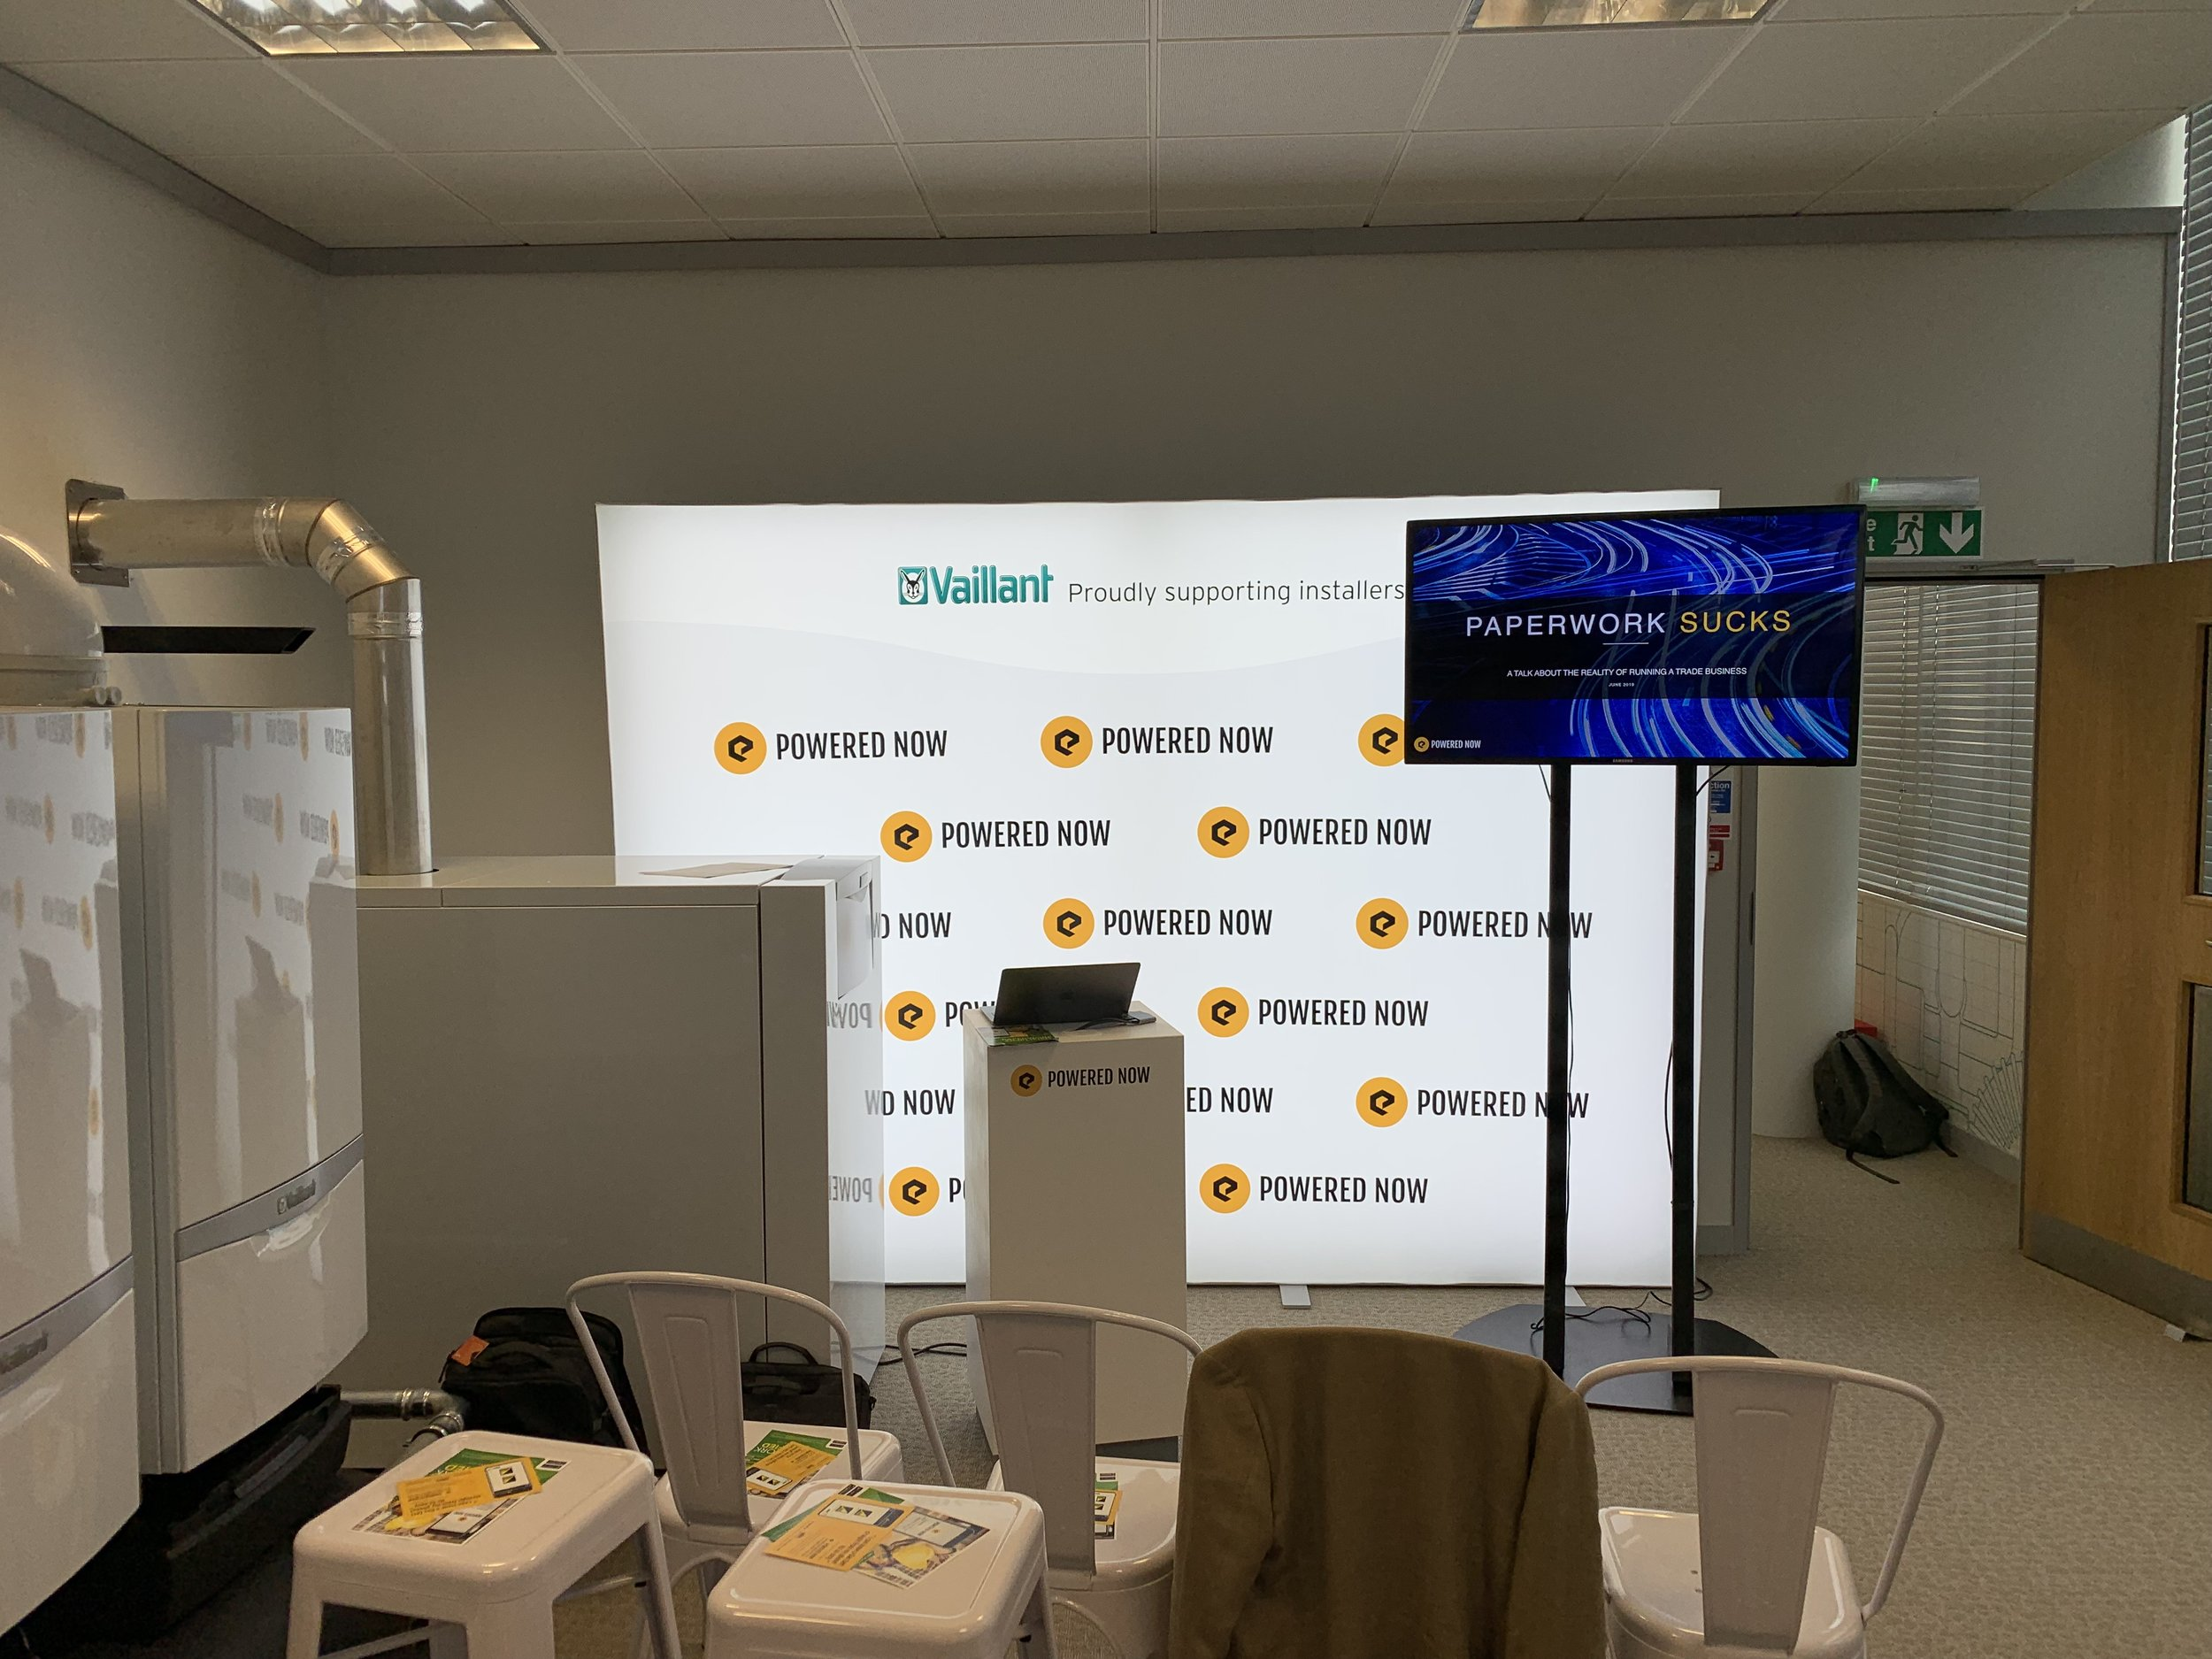 Our stand at the Vaillant roadshow